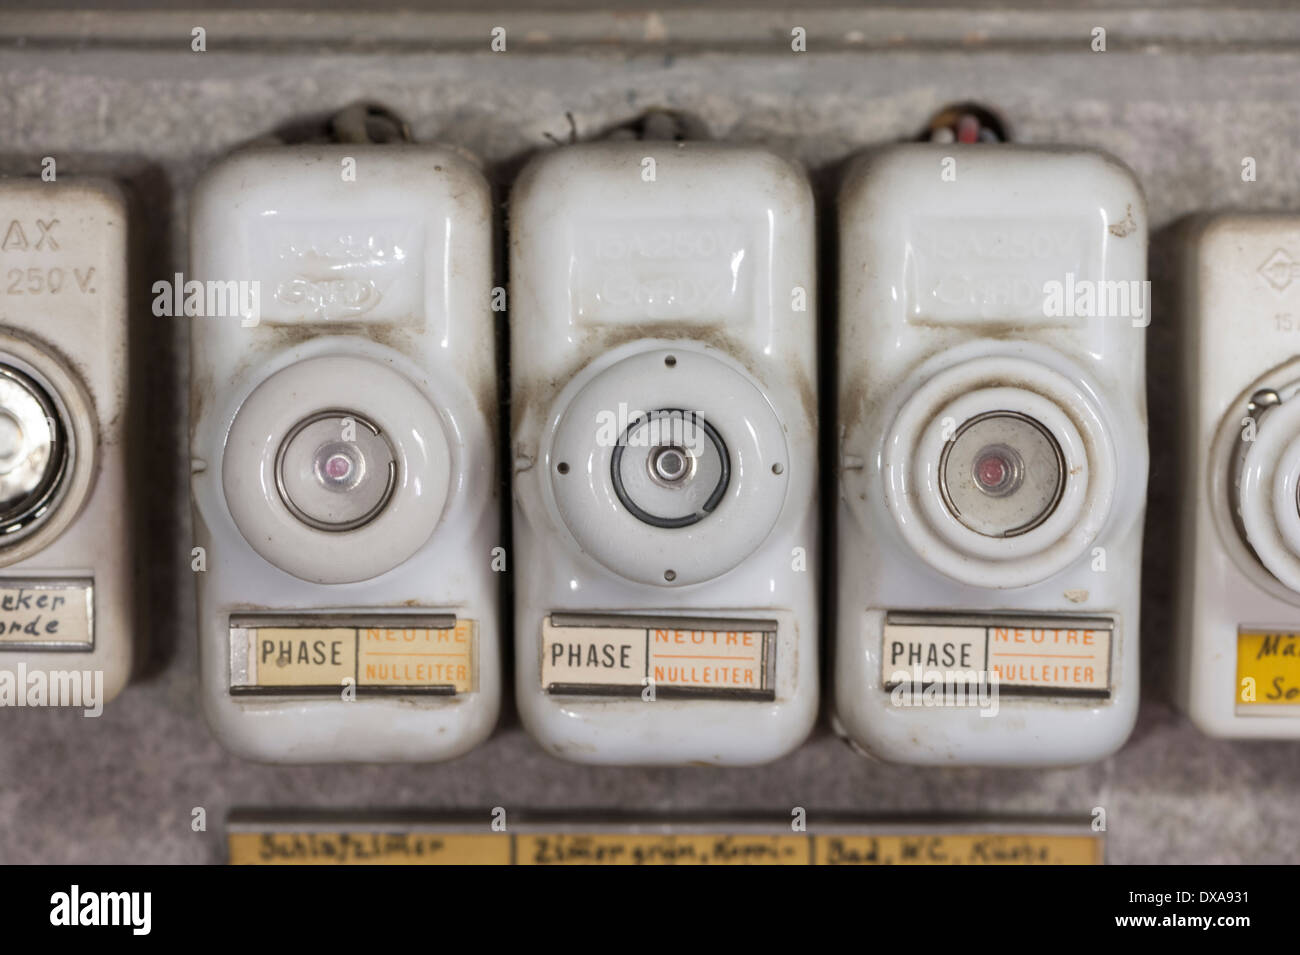 close up of an array of old fashioned lead fuses in a household fuse DXA931 old fuses fuse box stock photos & old fuses fuse box stock images how to change fuses in fuse box at arjmand.co